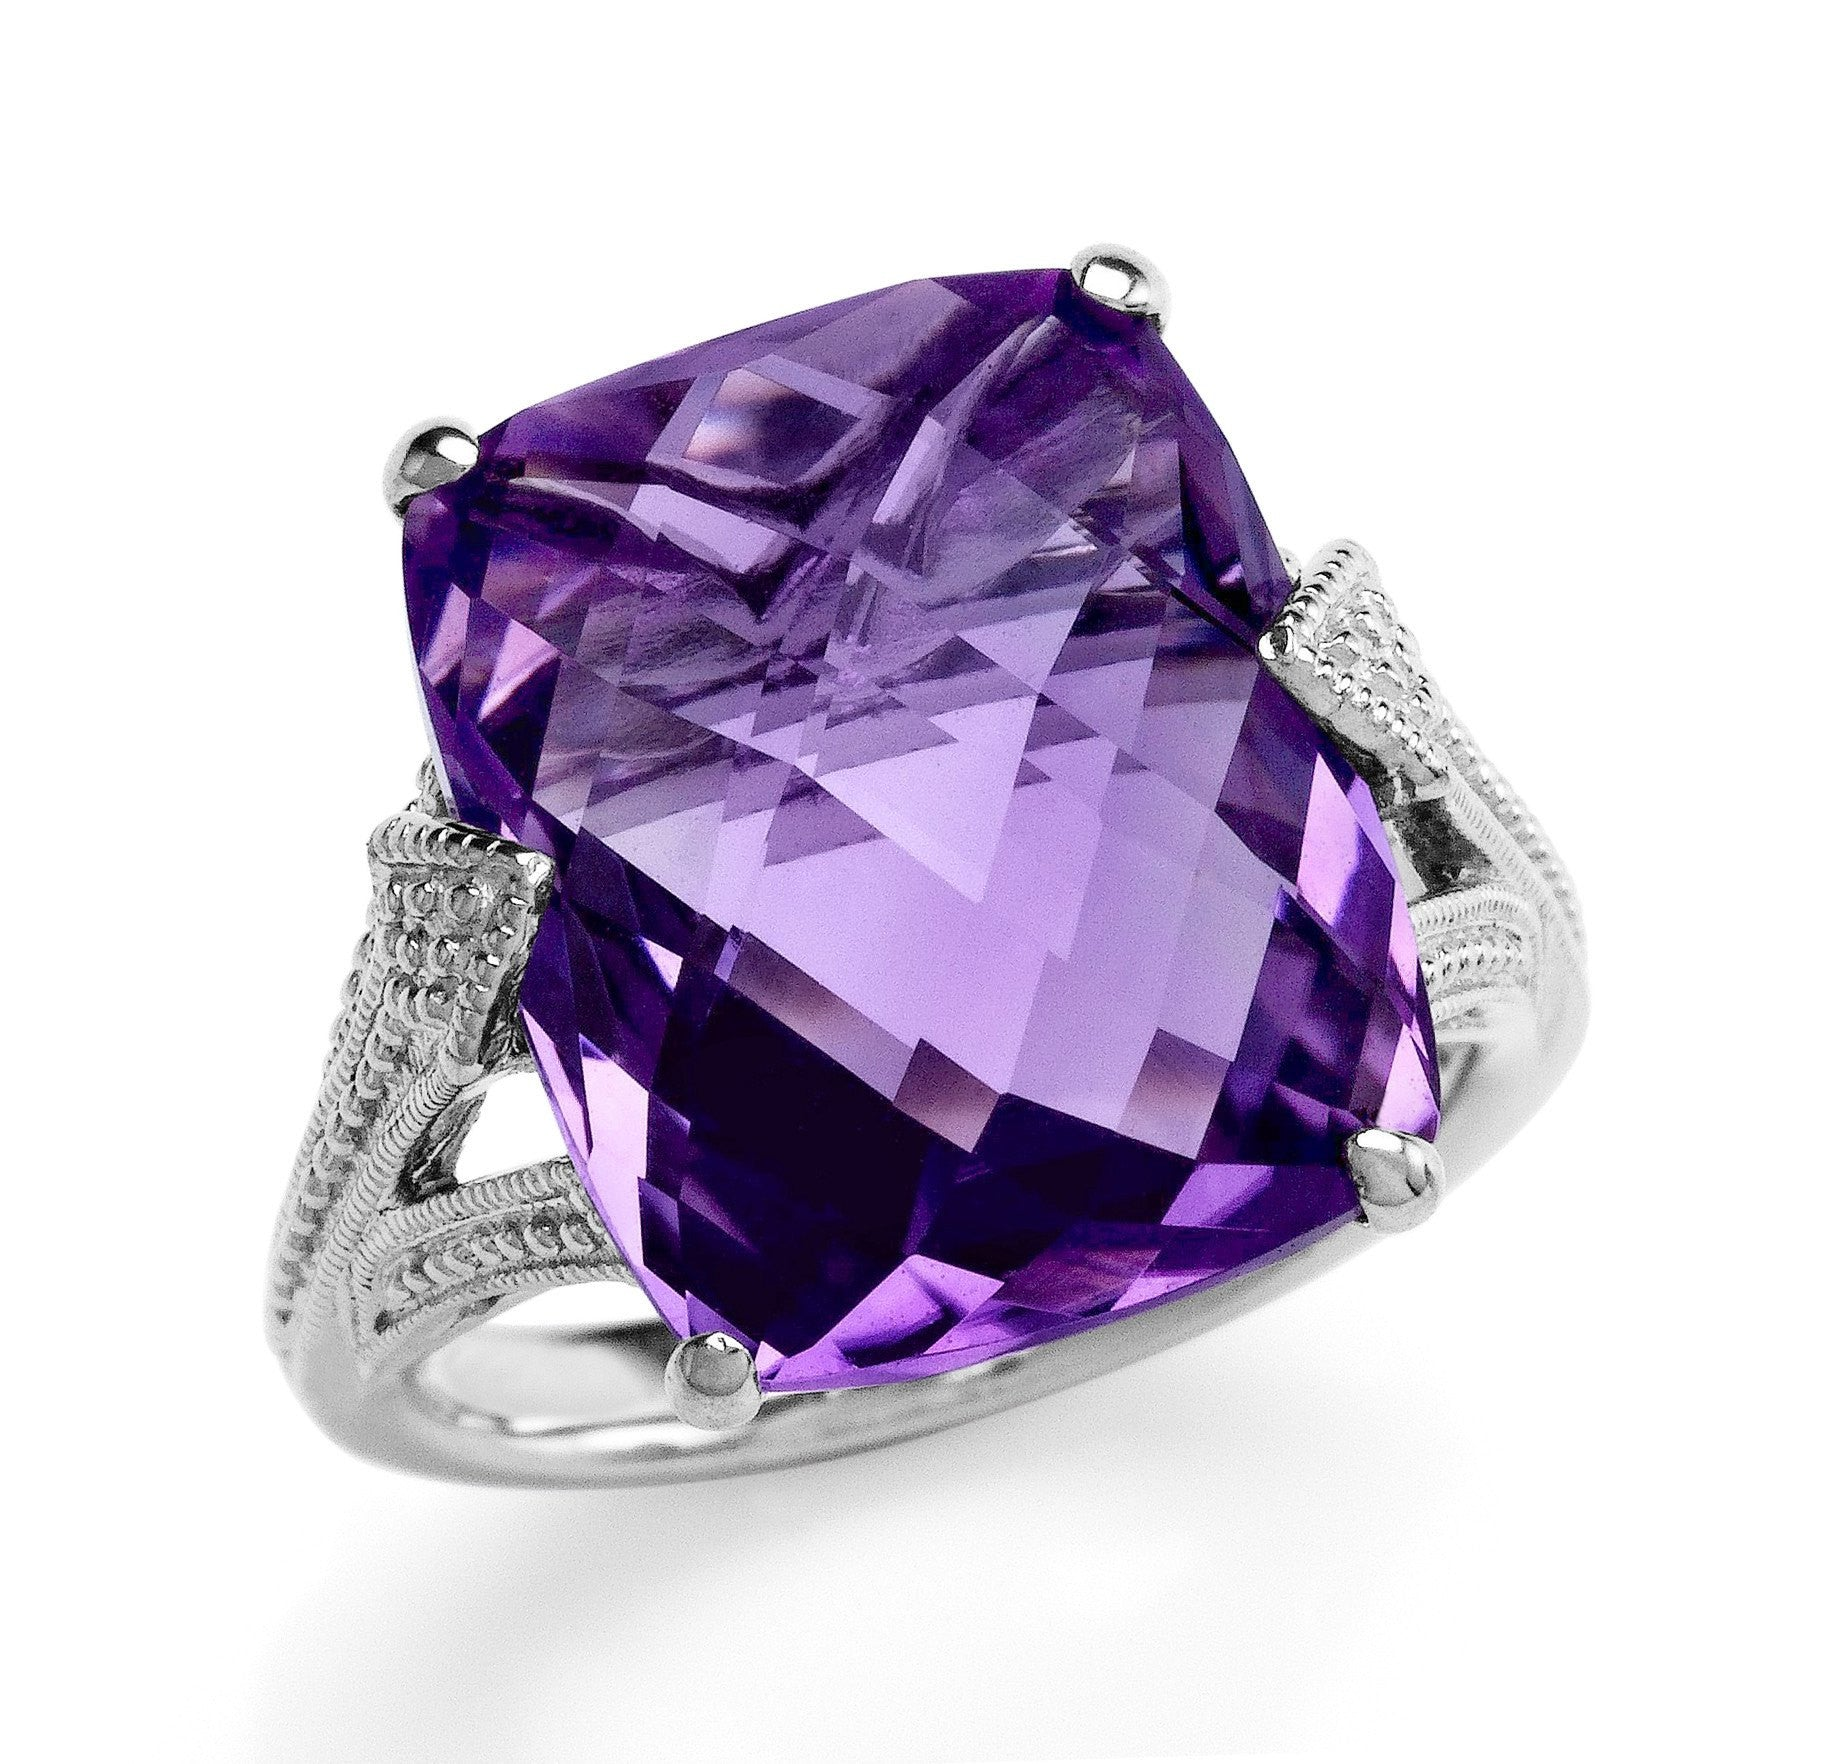 8.35 Carat Genuine Checkerboard Amethyst Cocktail Ring in Sterling Silver